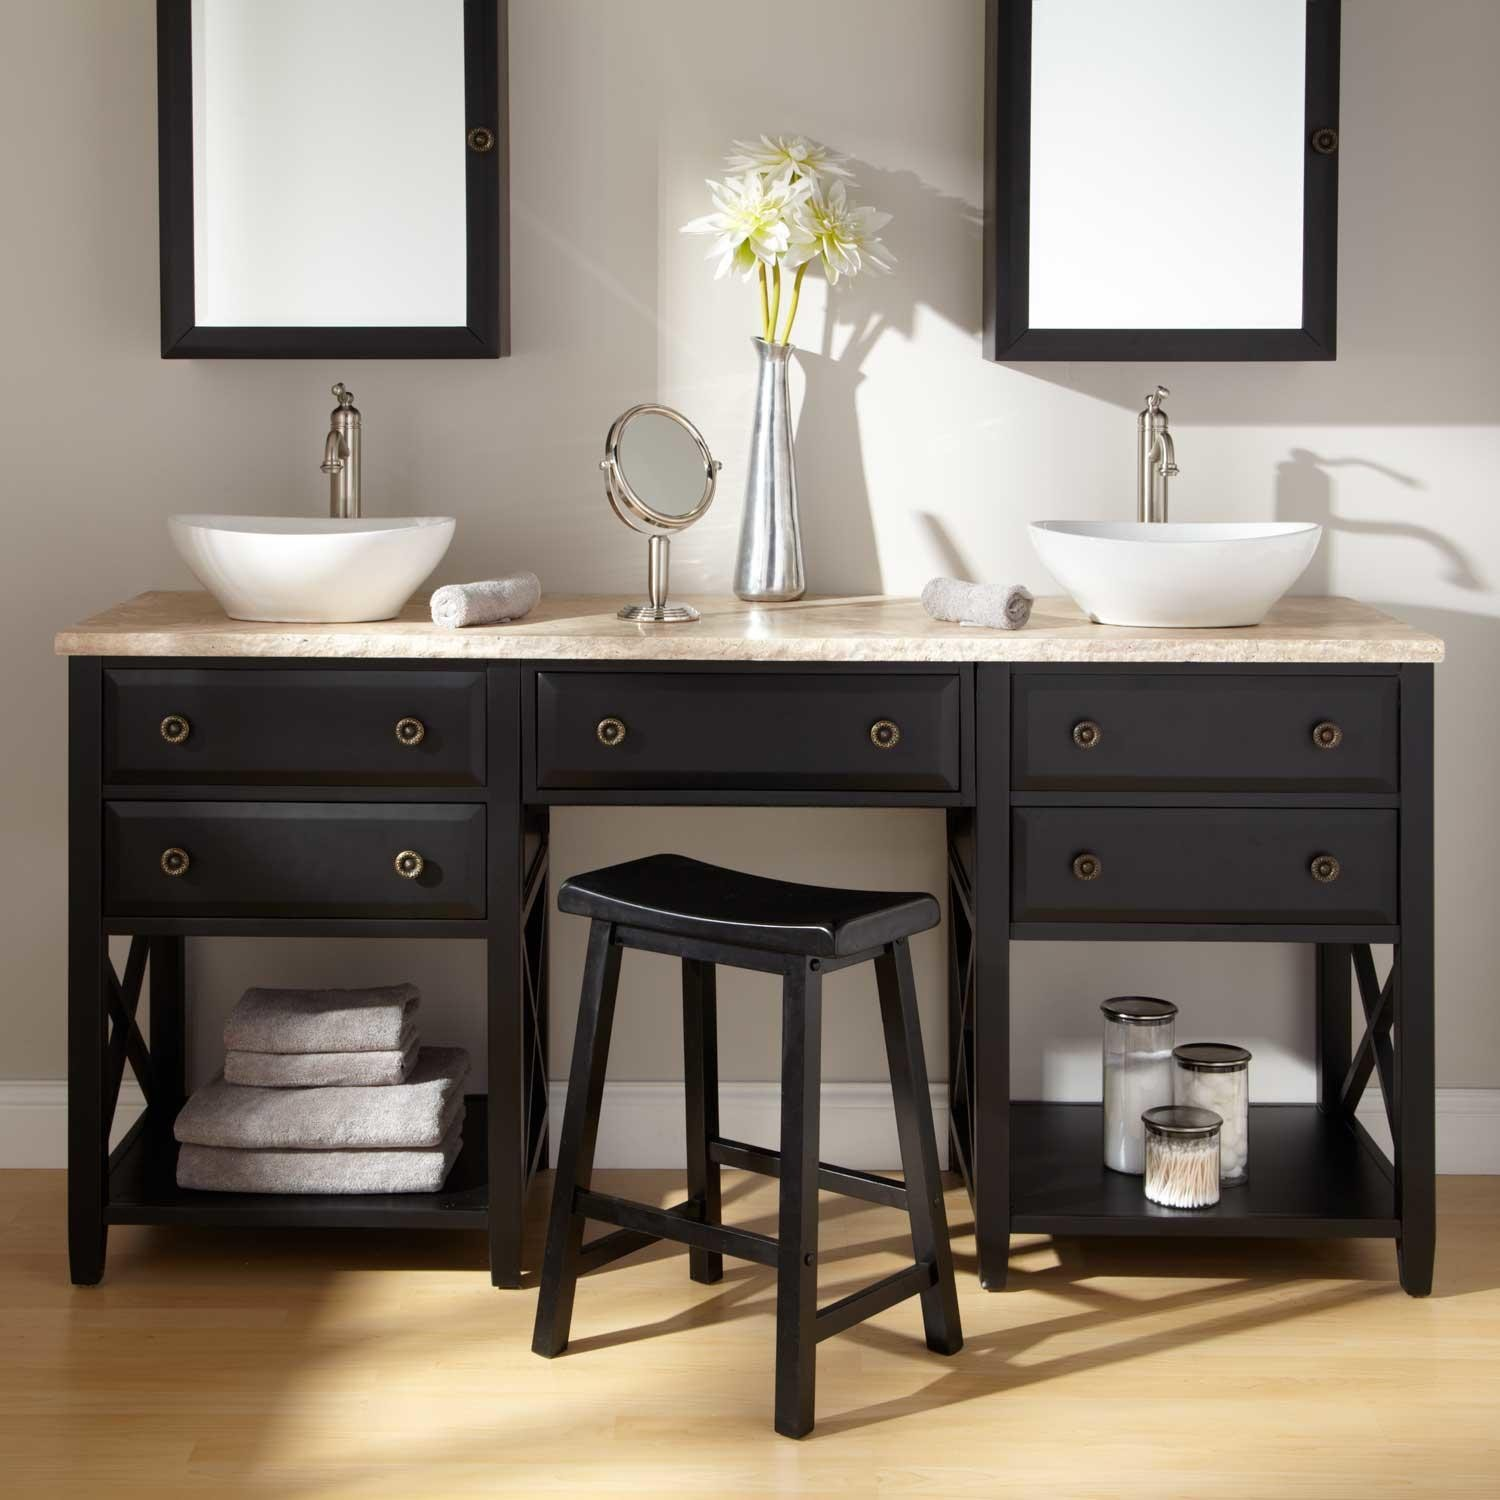 Image of: Vanity Table with Mirror and Bench Design Ideas